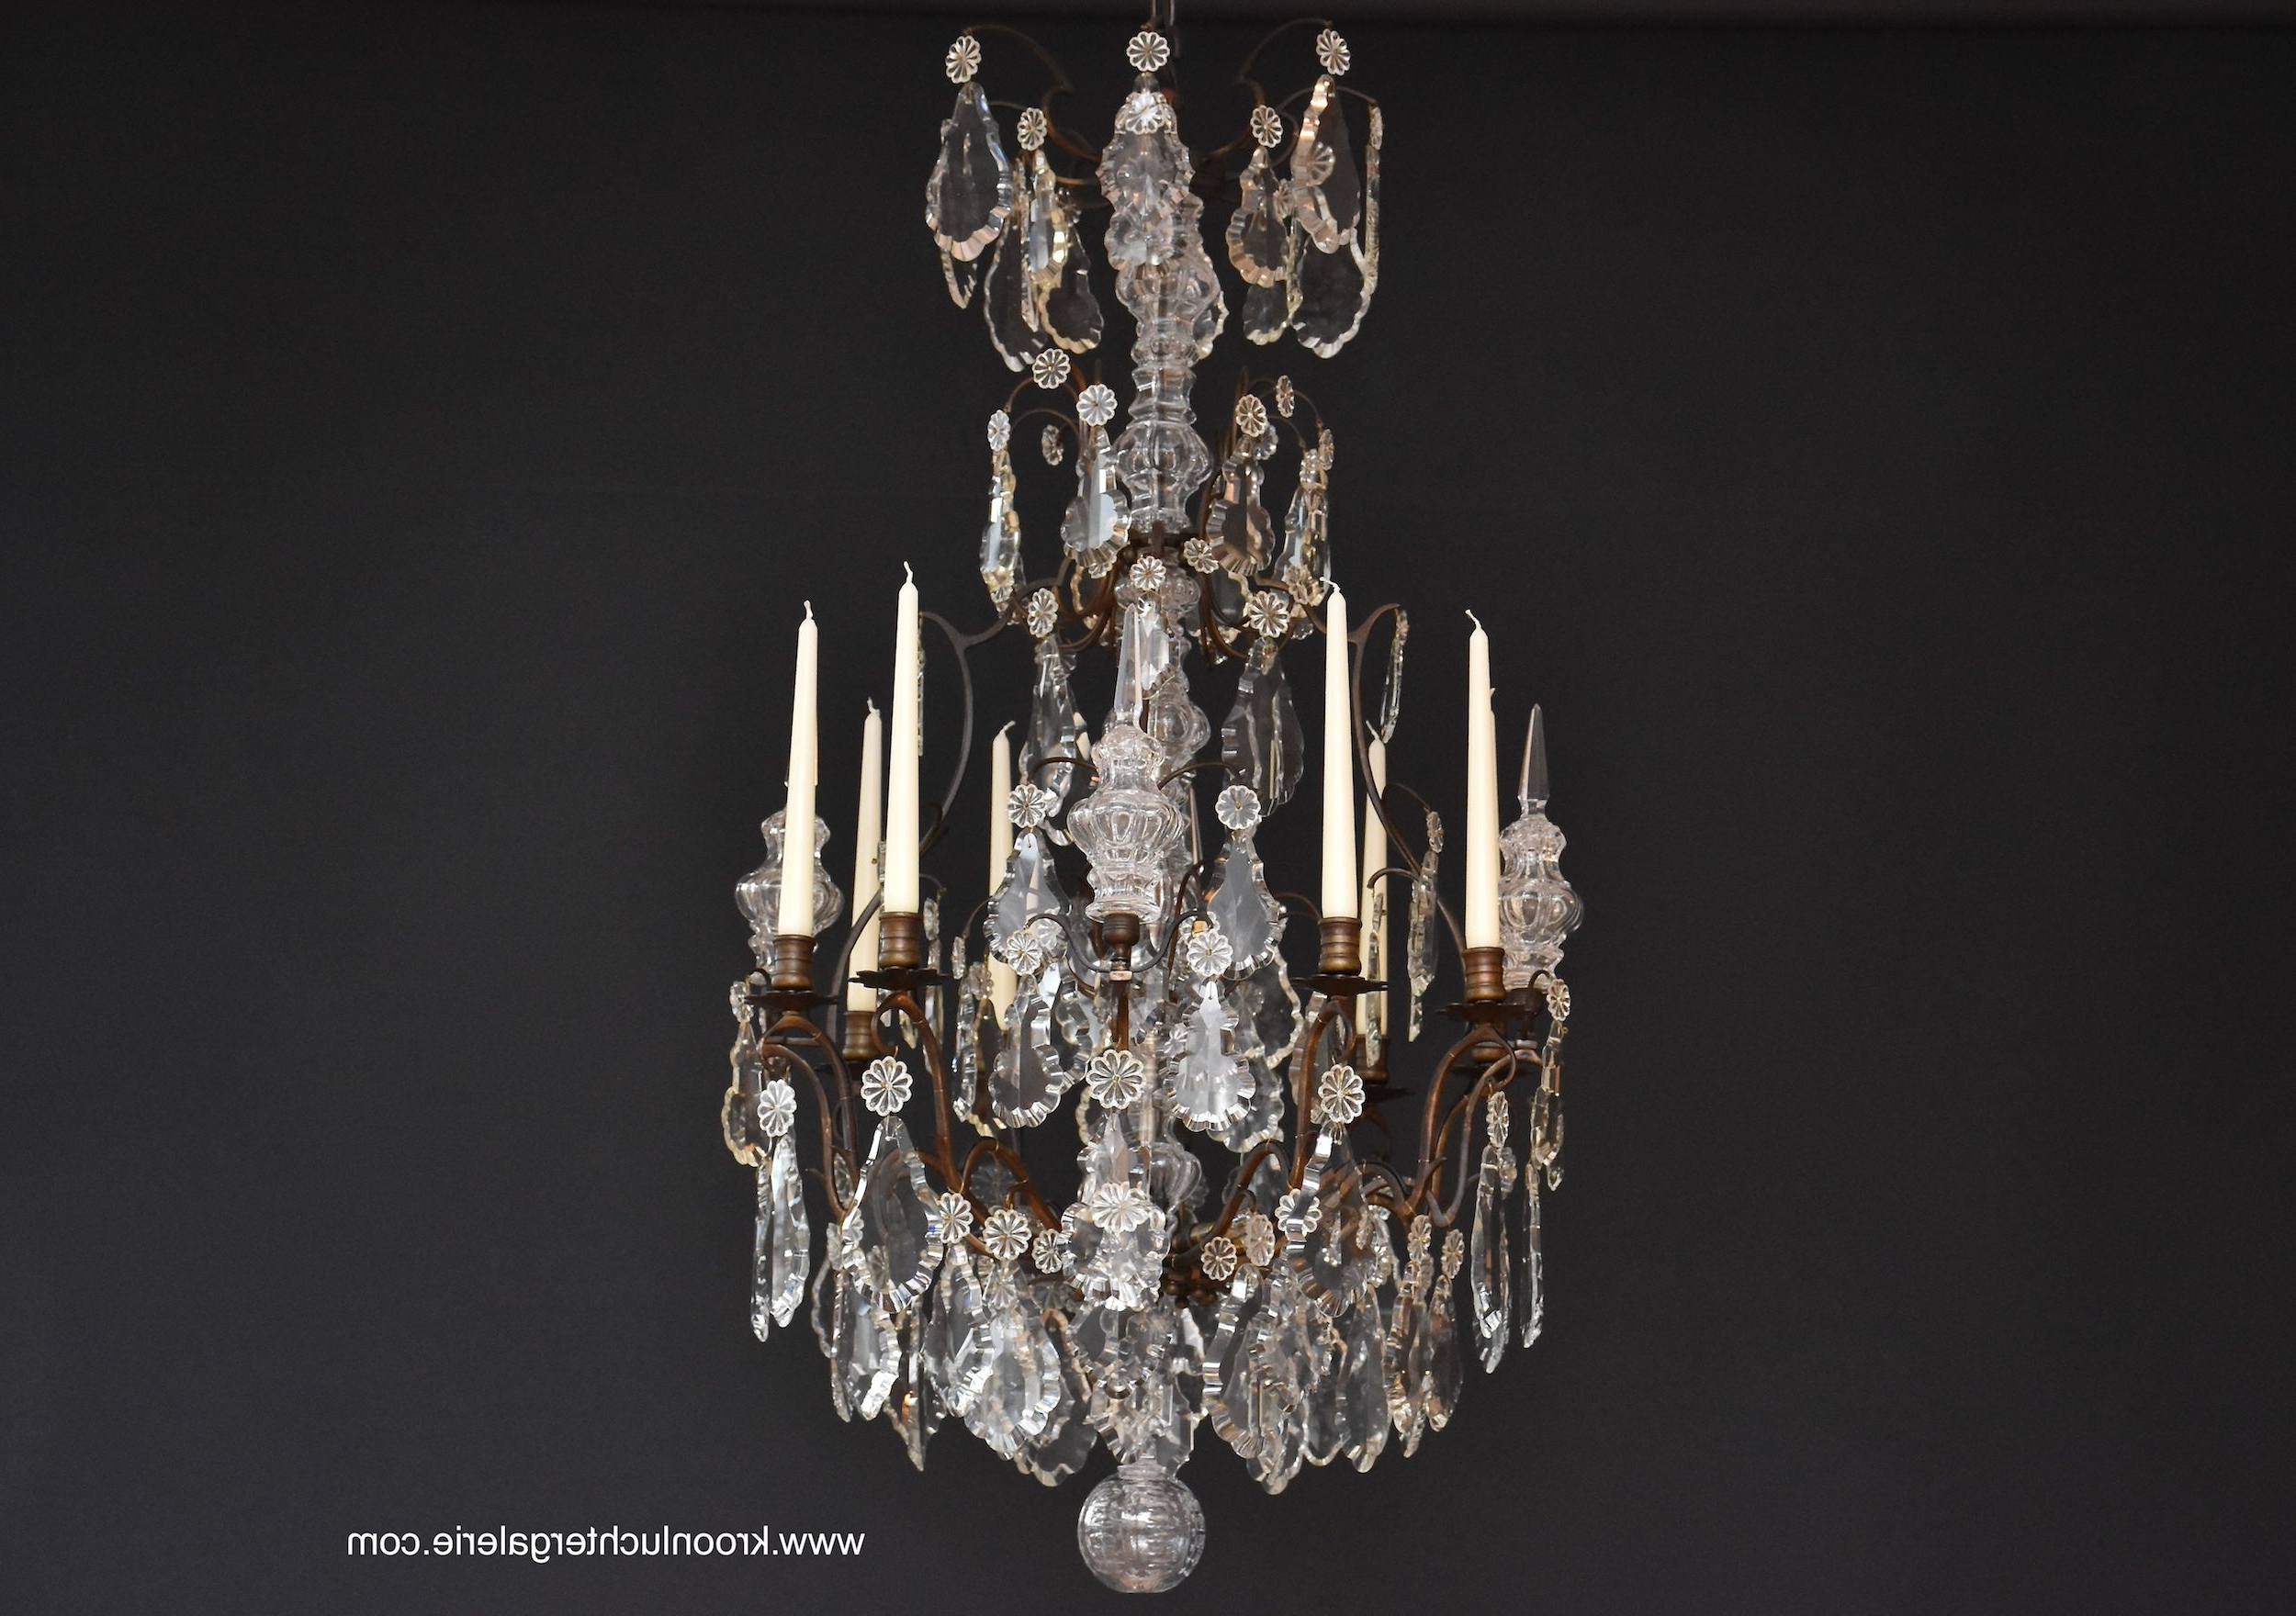 French Chandelier With Regard To Widely Used French Chandelier In Style Of Louis Xv, Ref (View 7 of 20)